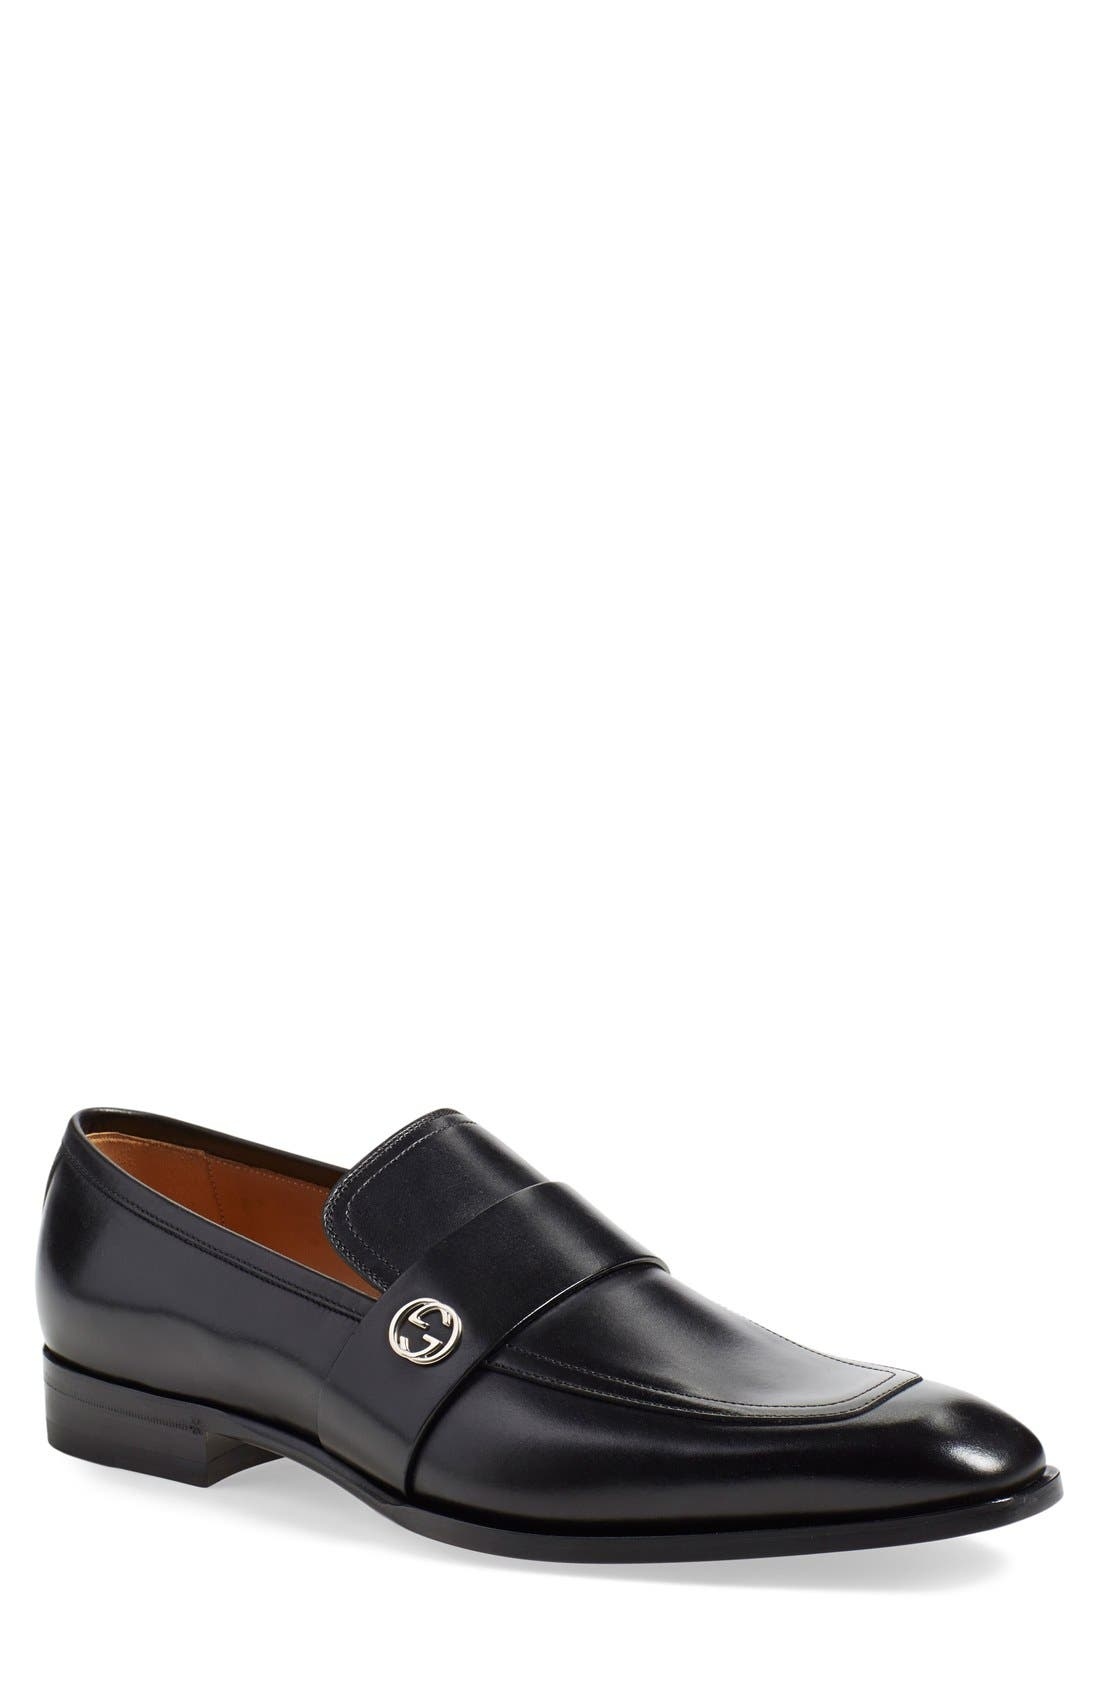 gucci shoes black snake. gucci \u0027broadwick\u0027 loafer shoes black snake